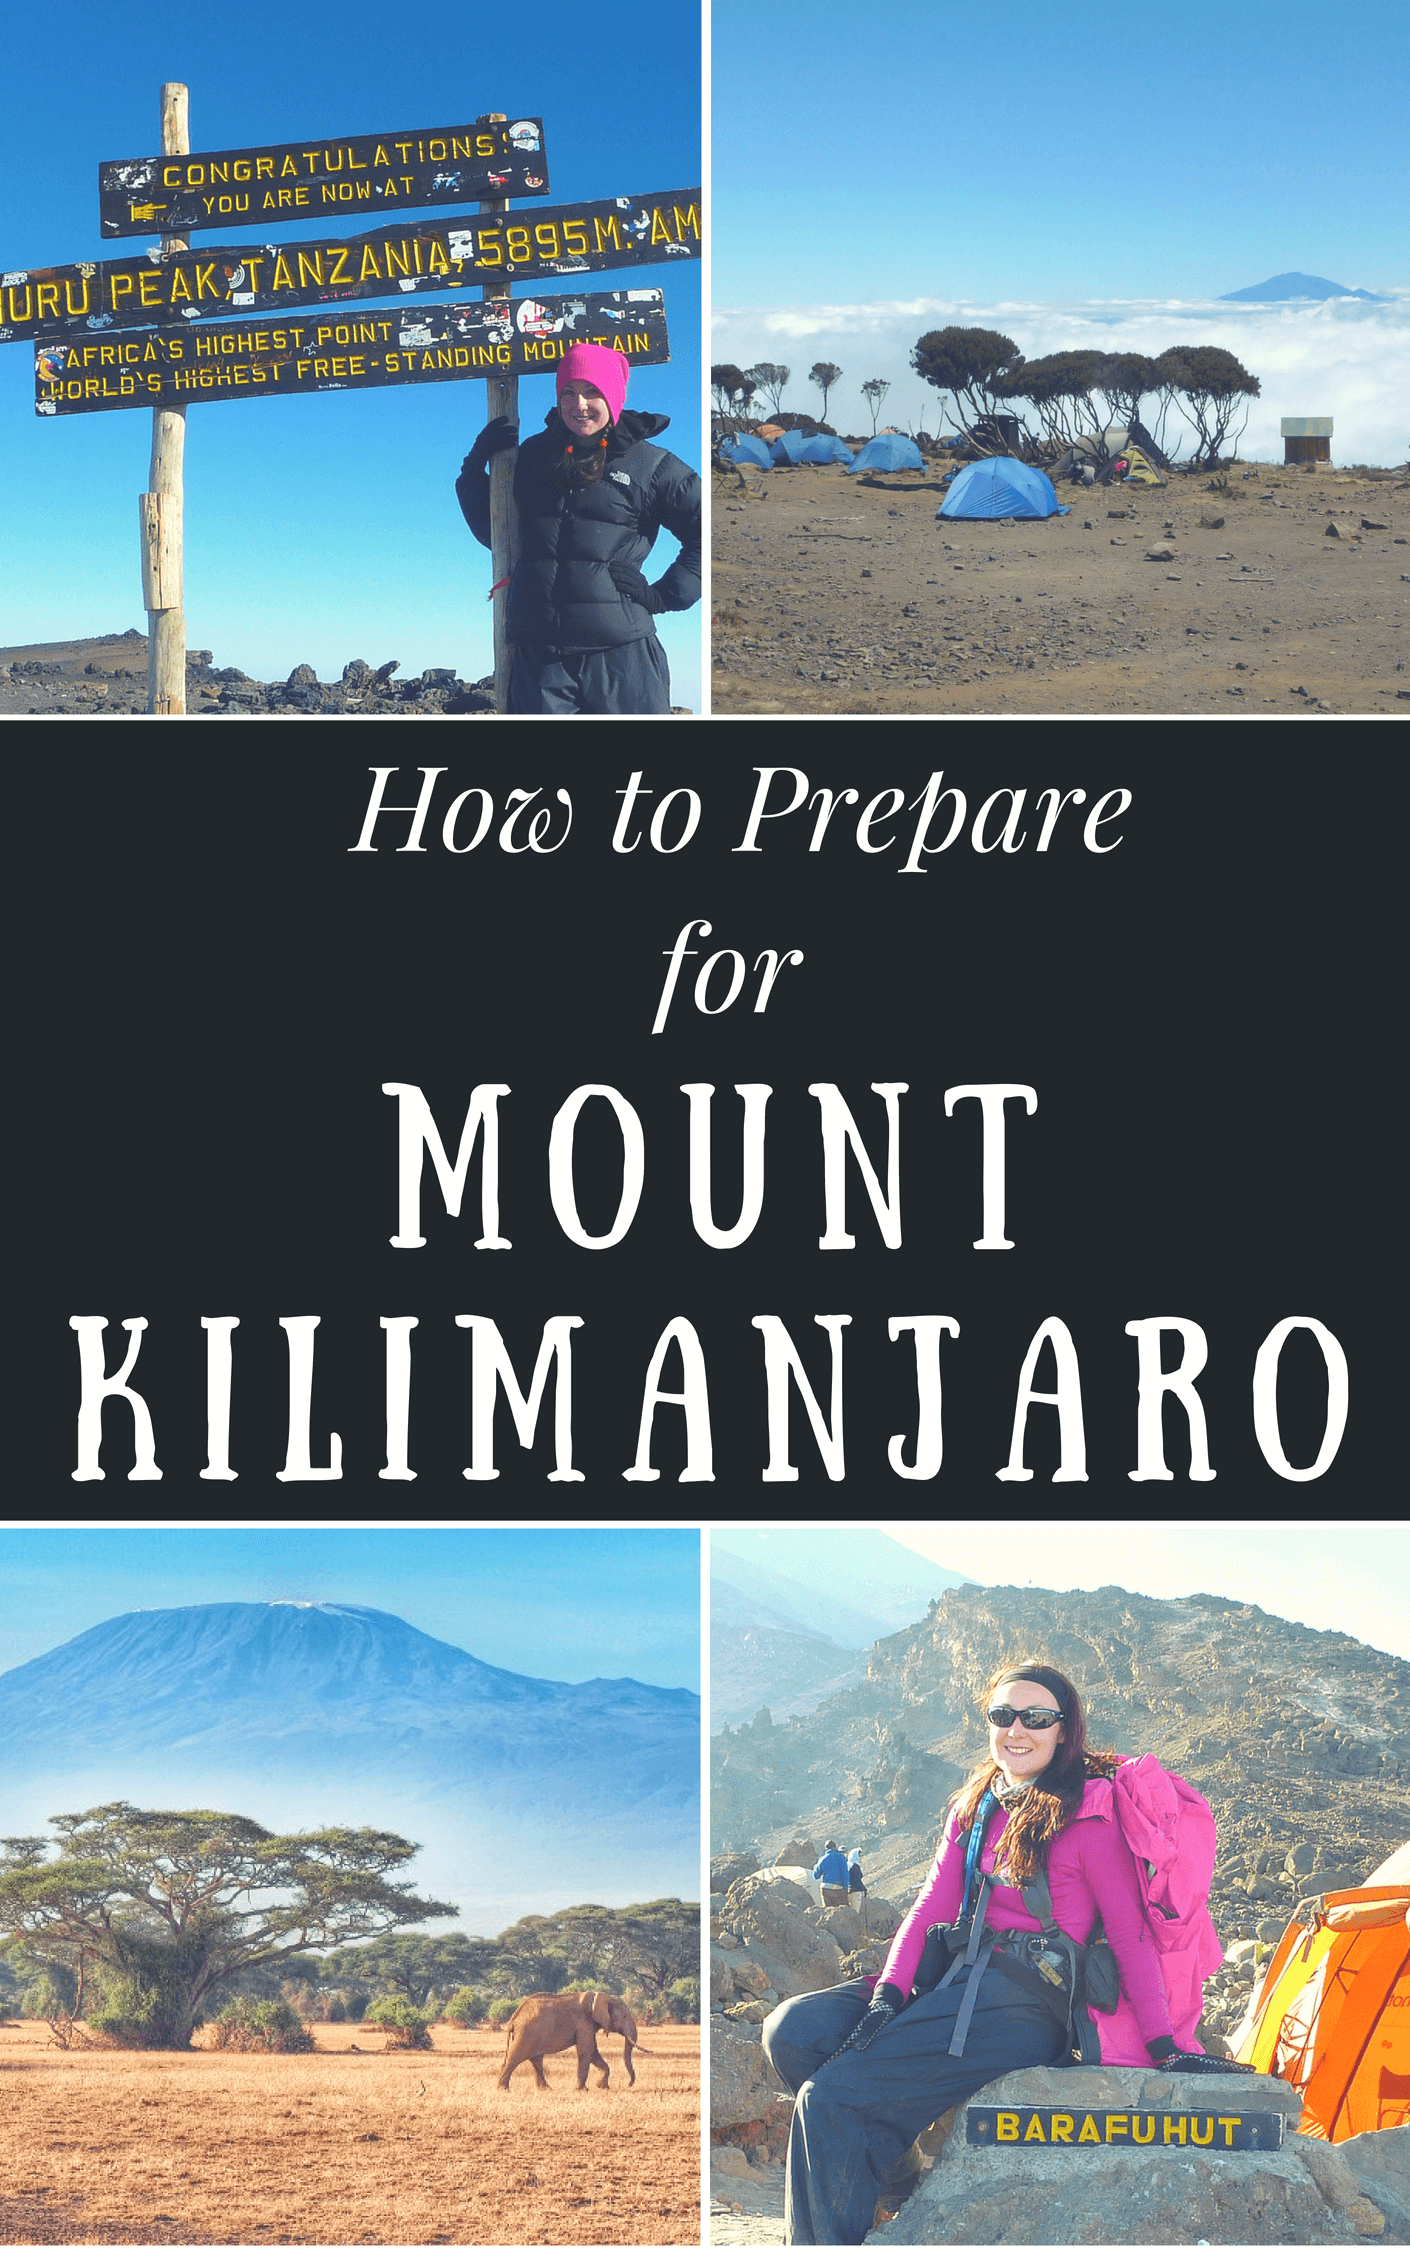 How to Prepare for Climbing Mount Kilimanjaro & Top Tips for Reaching the Top